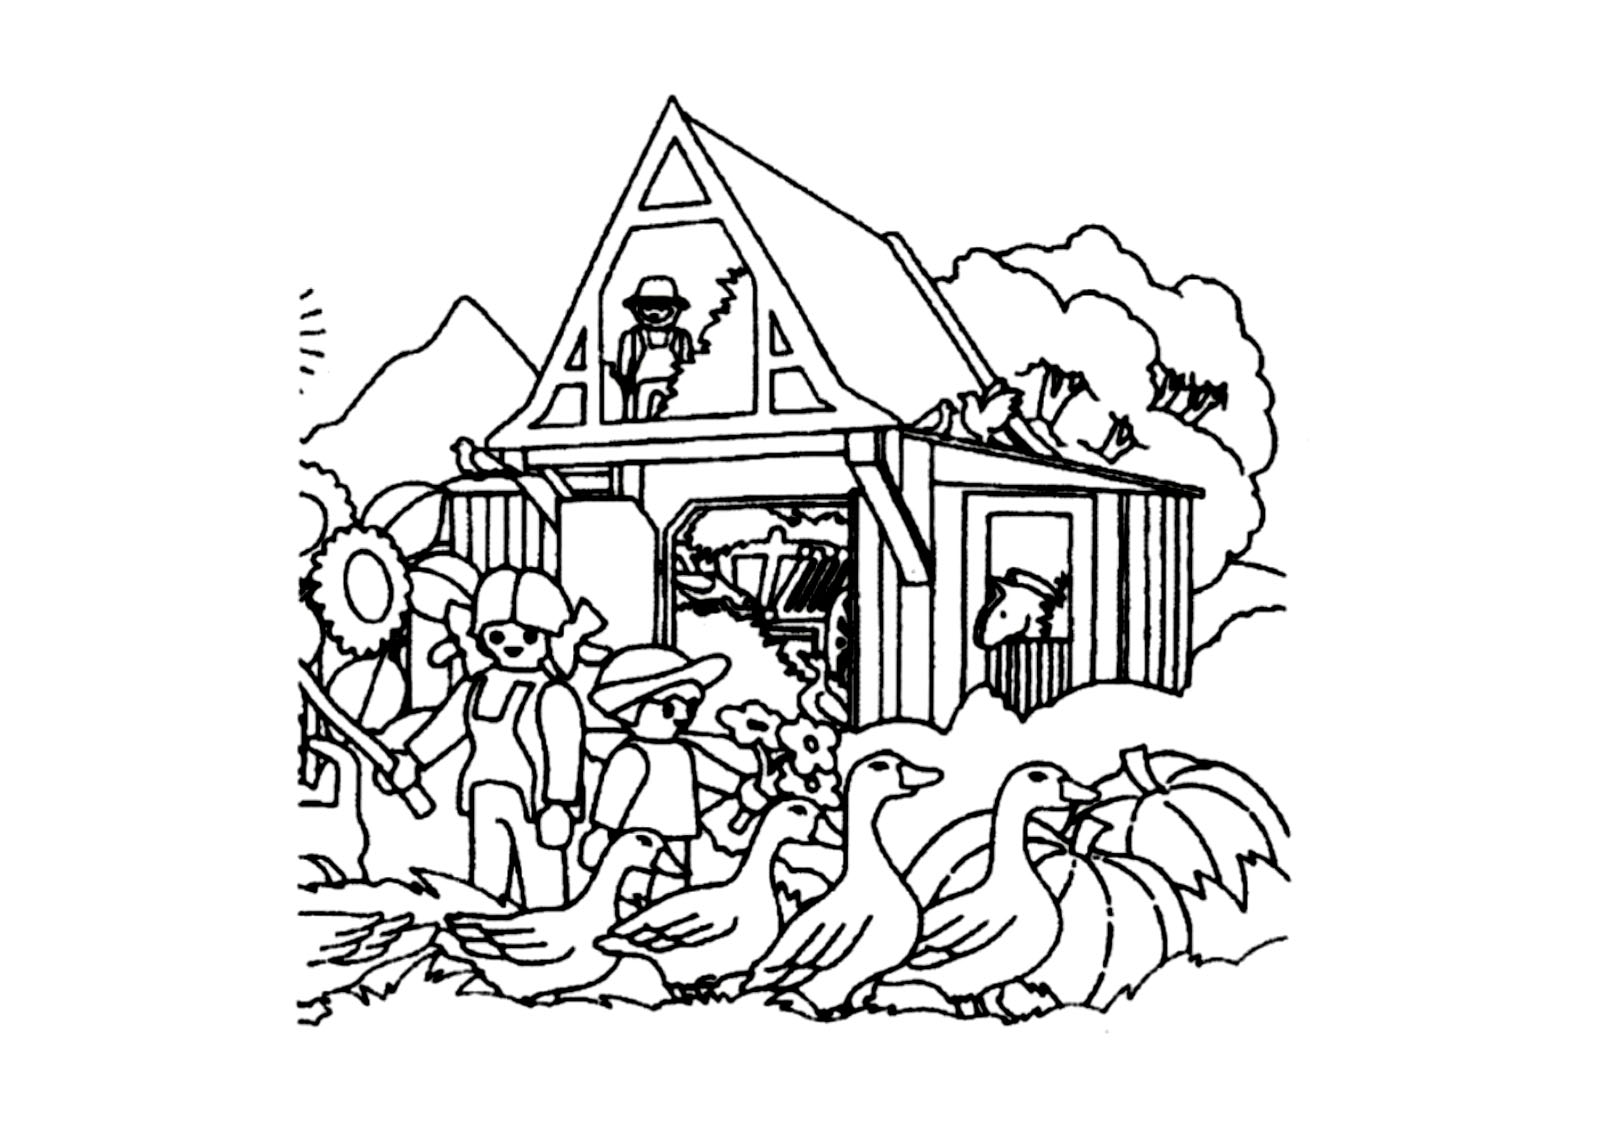 Incredible Playmobils coloring page to print and color for free